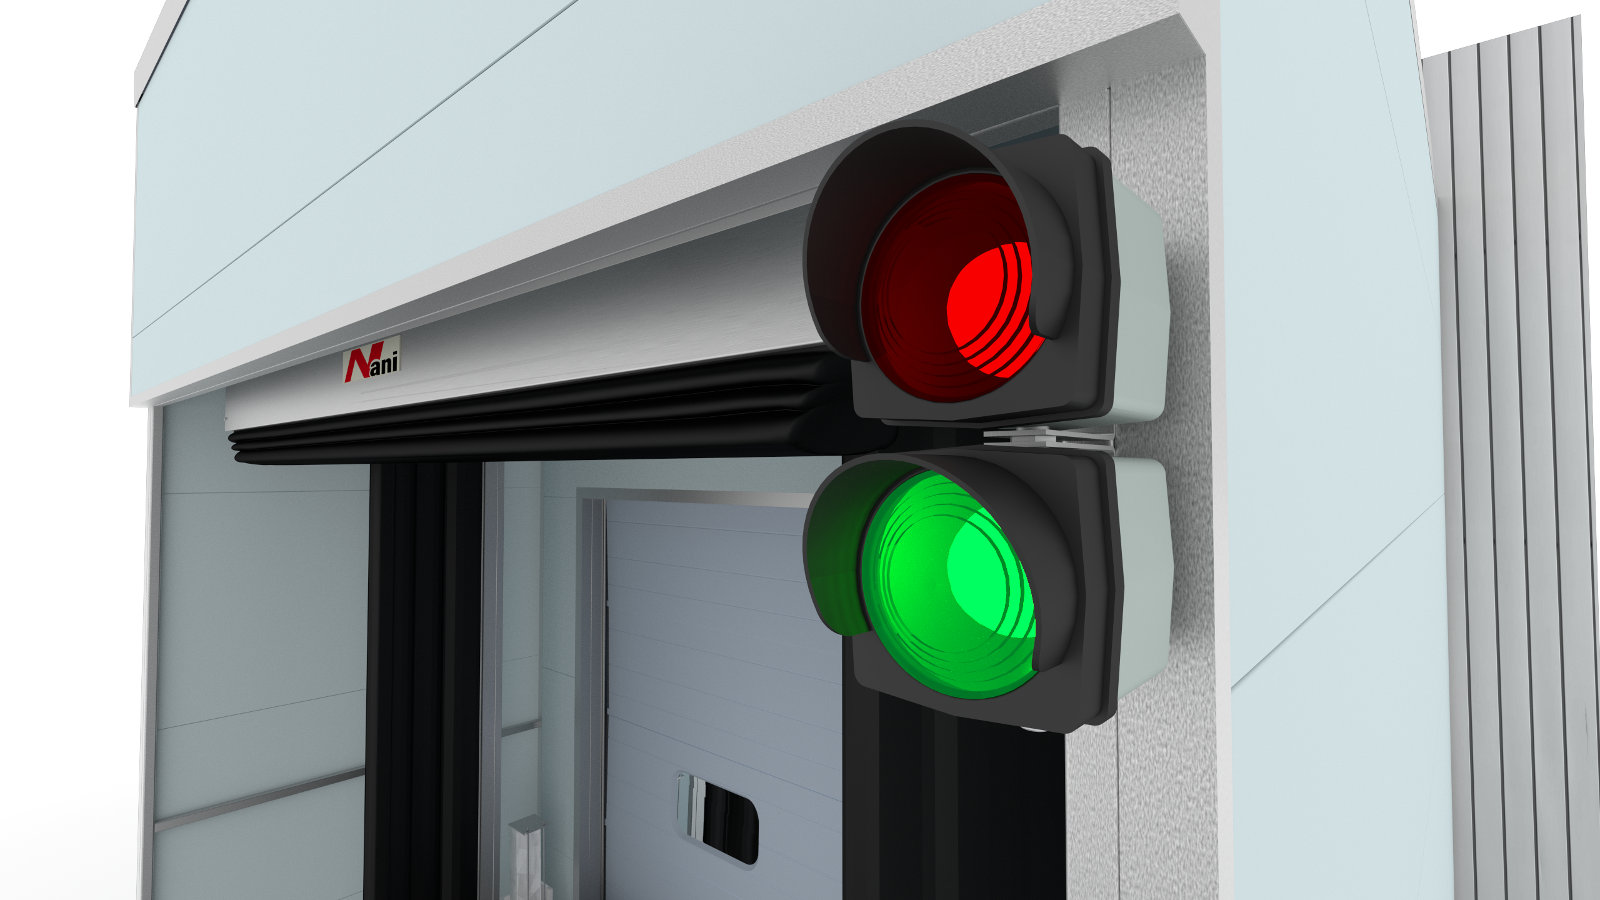 9. Traffic light